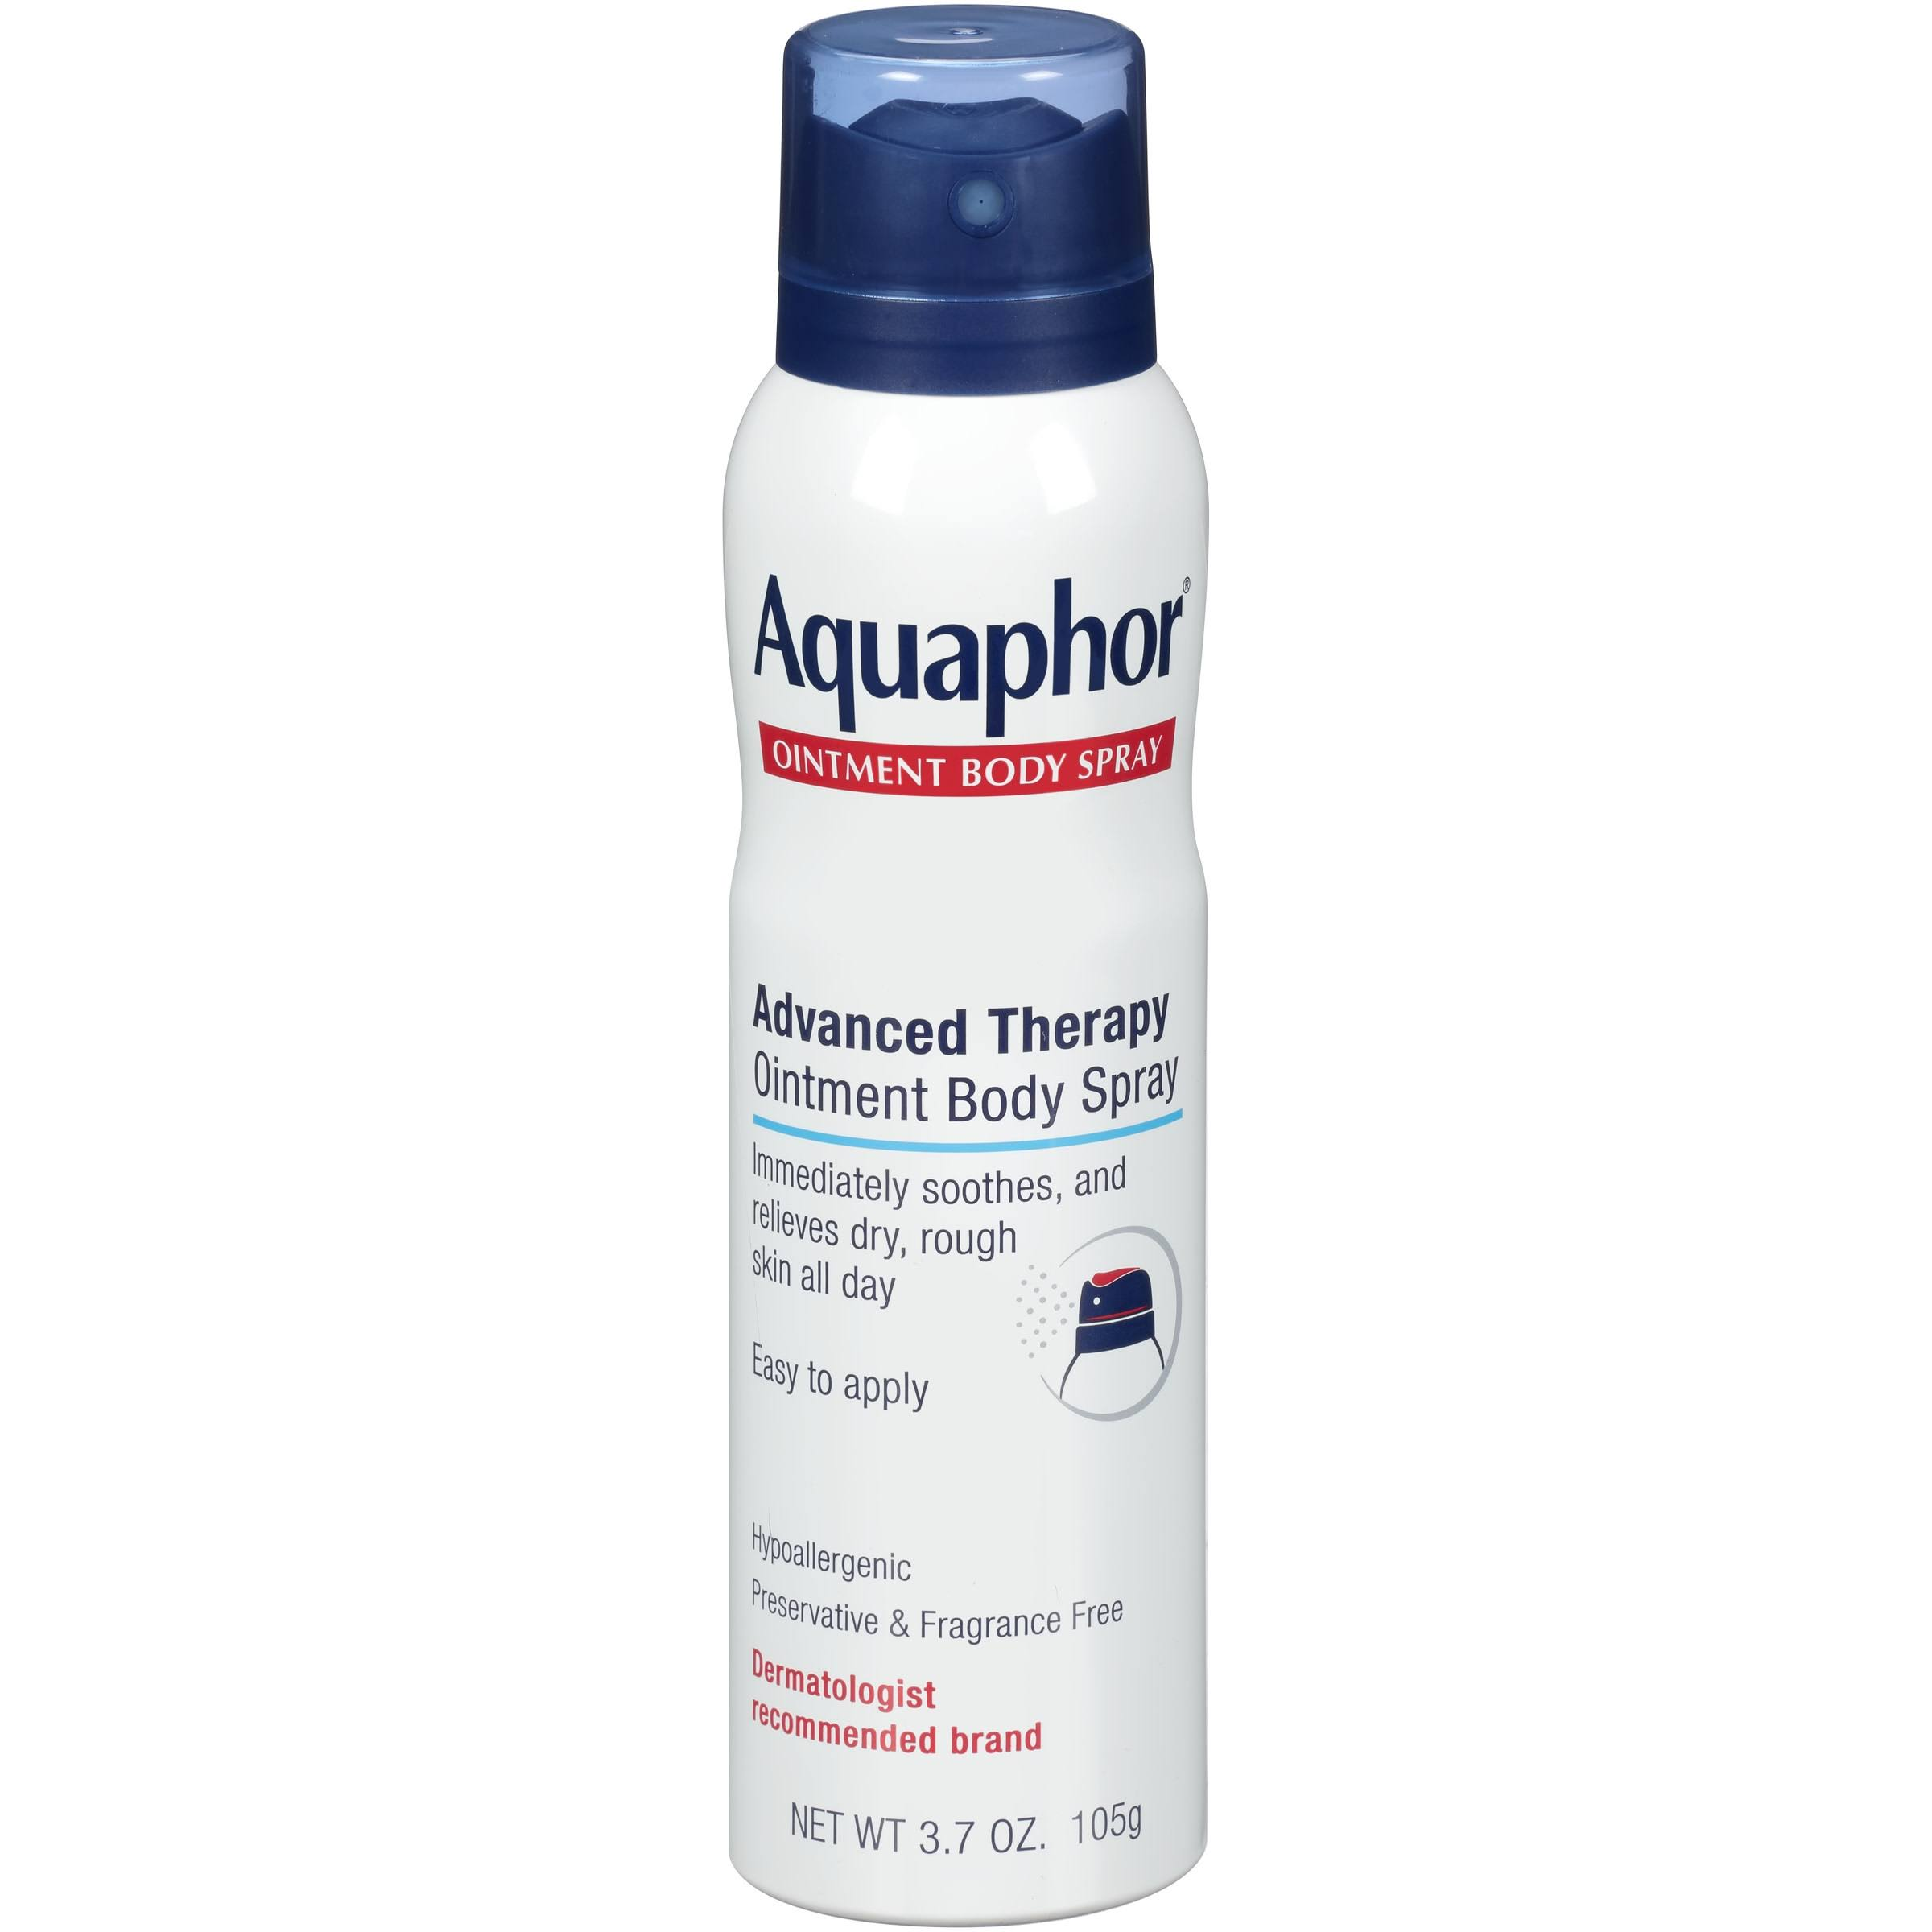 Aquaphor Ointment Body Spray, Advanced Therapy - 3.7 oz